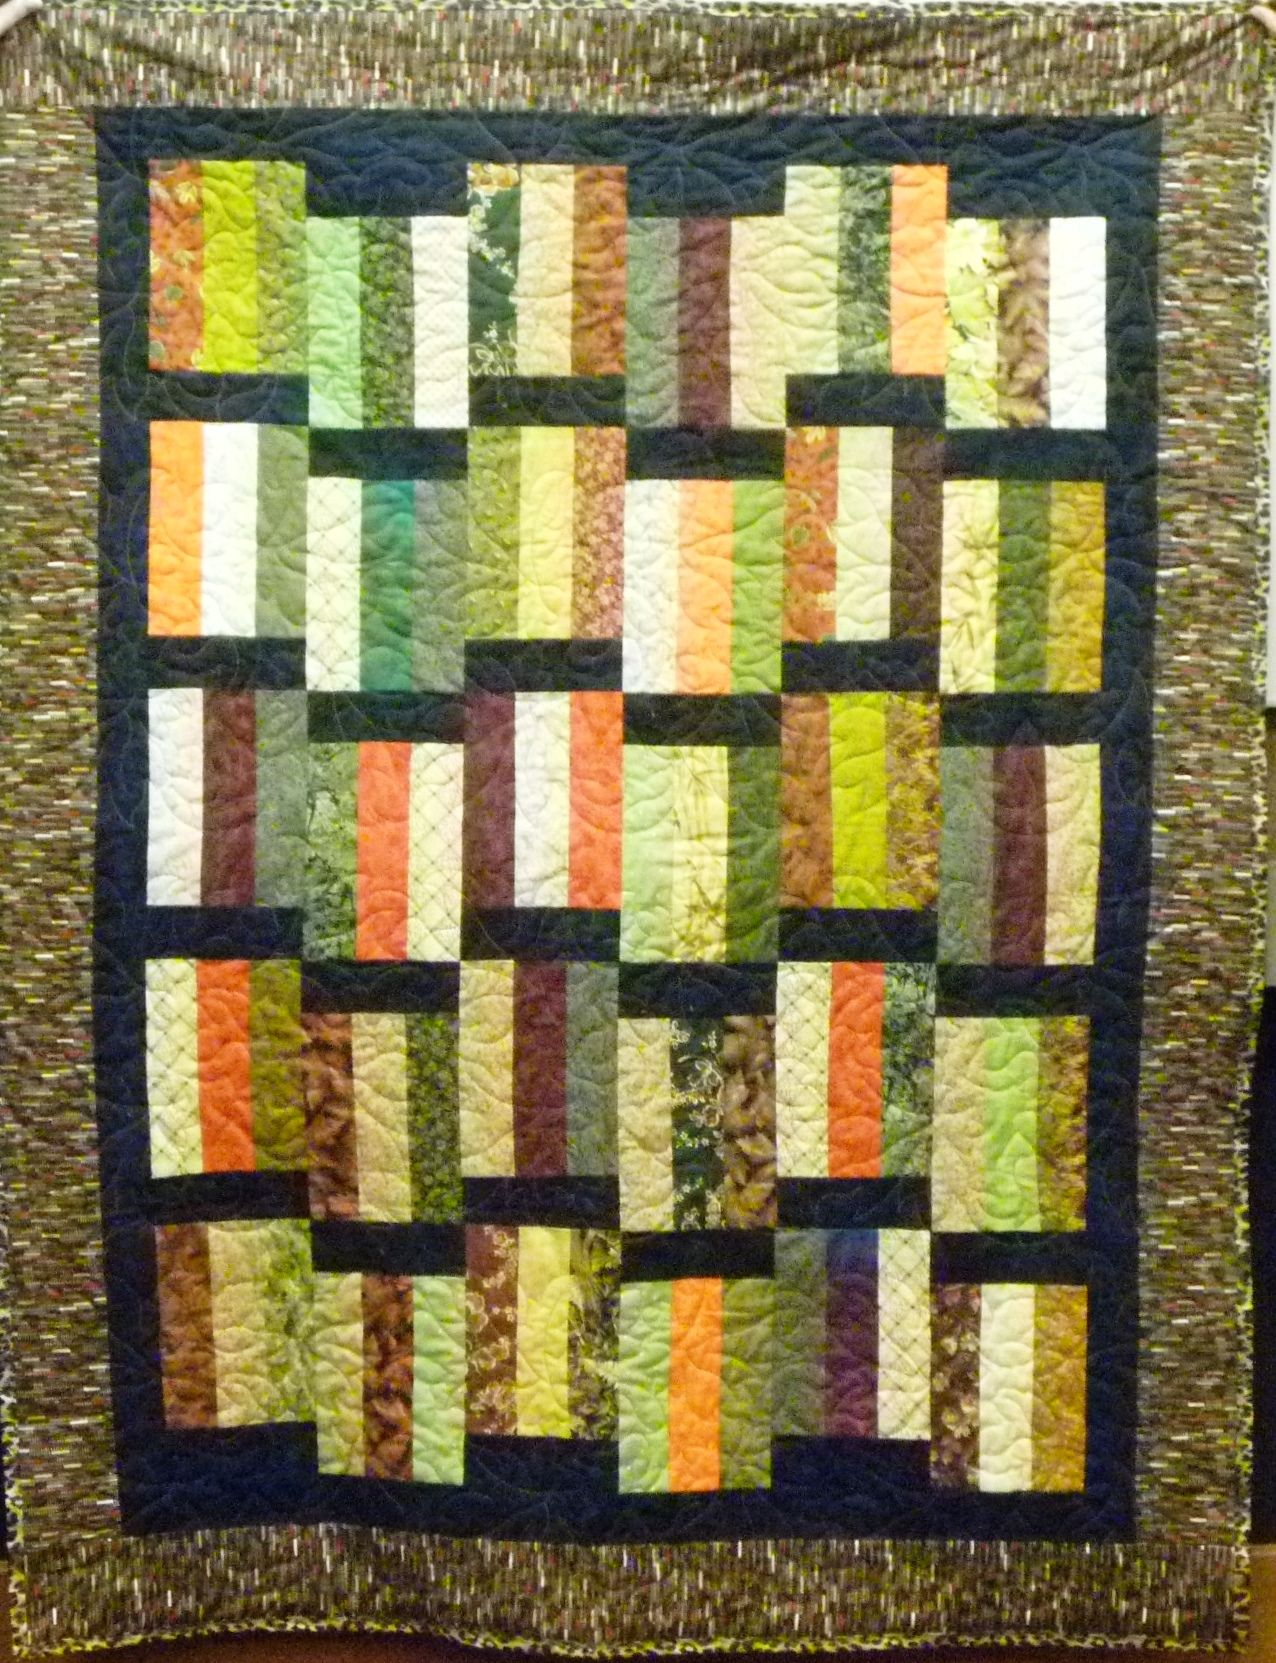 Love the earth tones in this quilt, by Madeline Furtado.